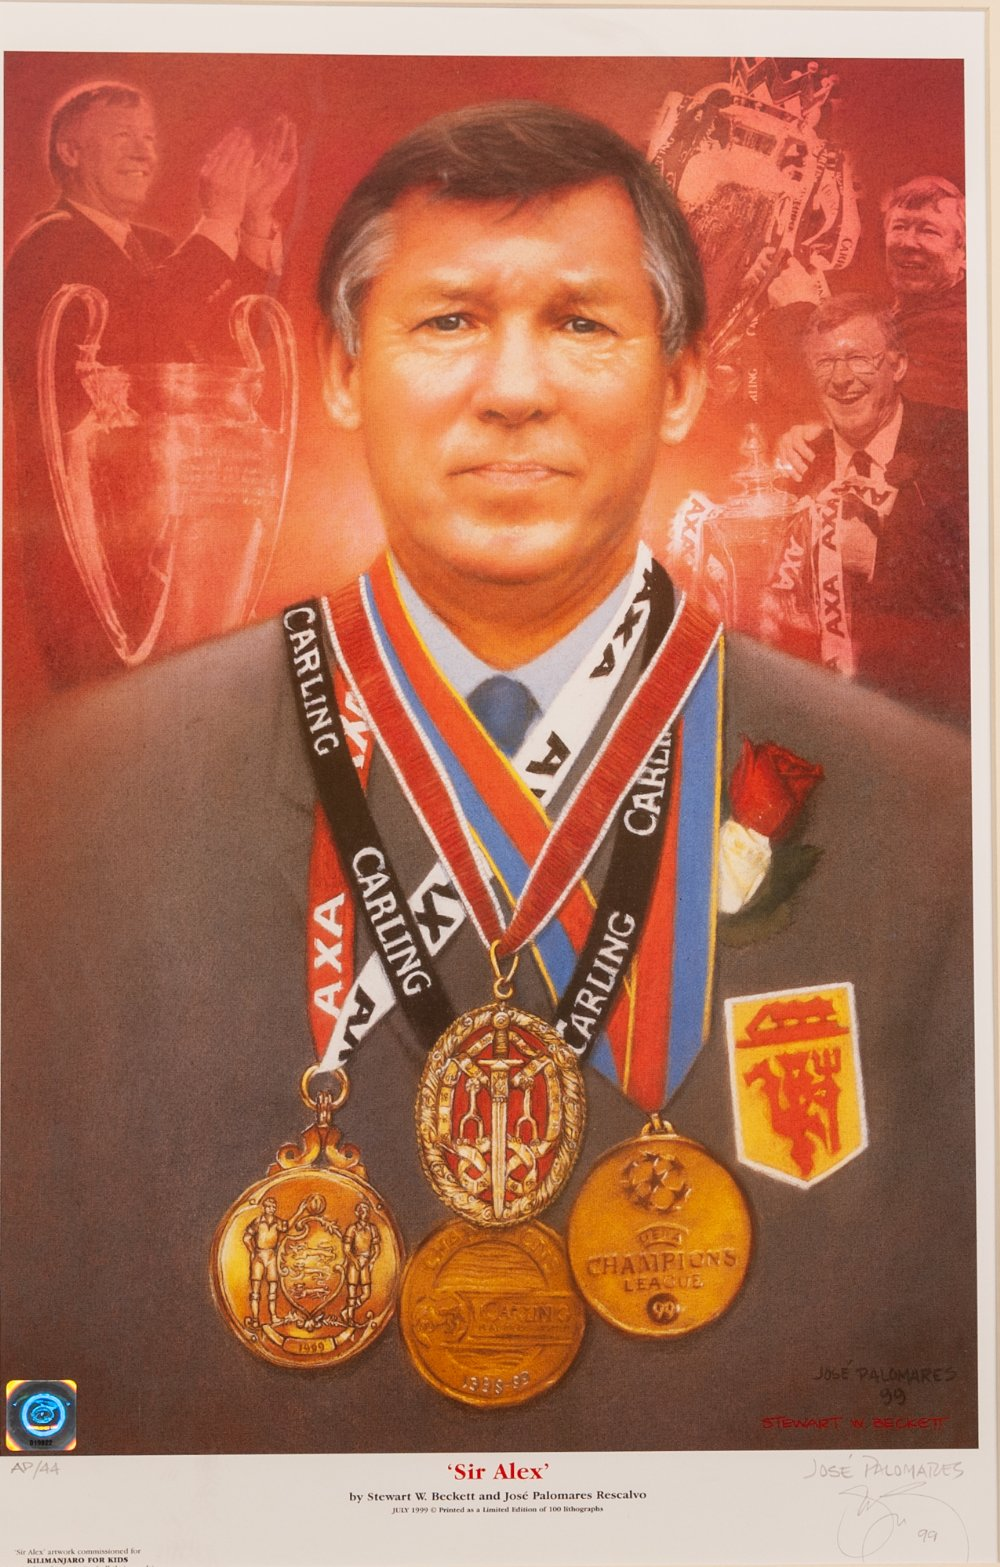 Lot 60 - SIGNED PHOTOGRAPH OF SIR ALEX FERGUSON CBE. Dinner menu and Conferment of the Freedom of the City